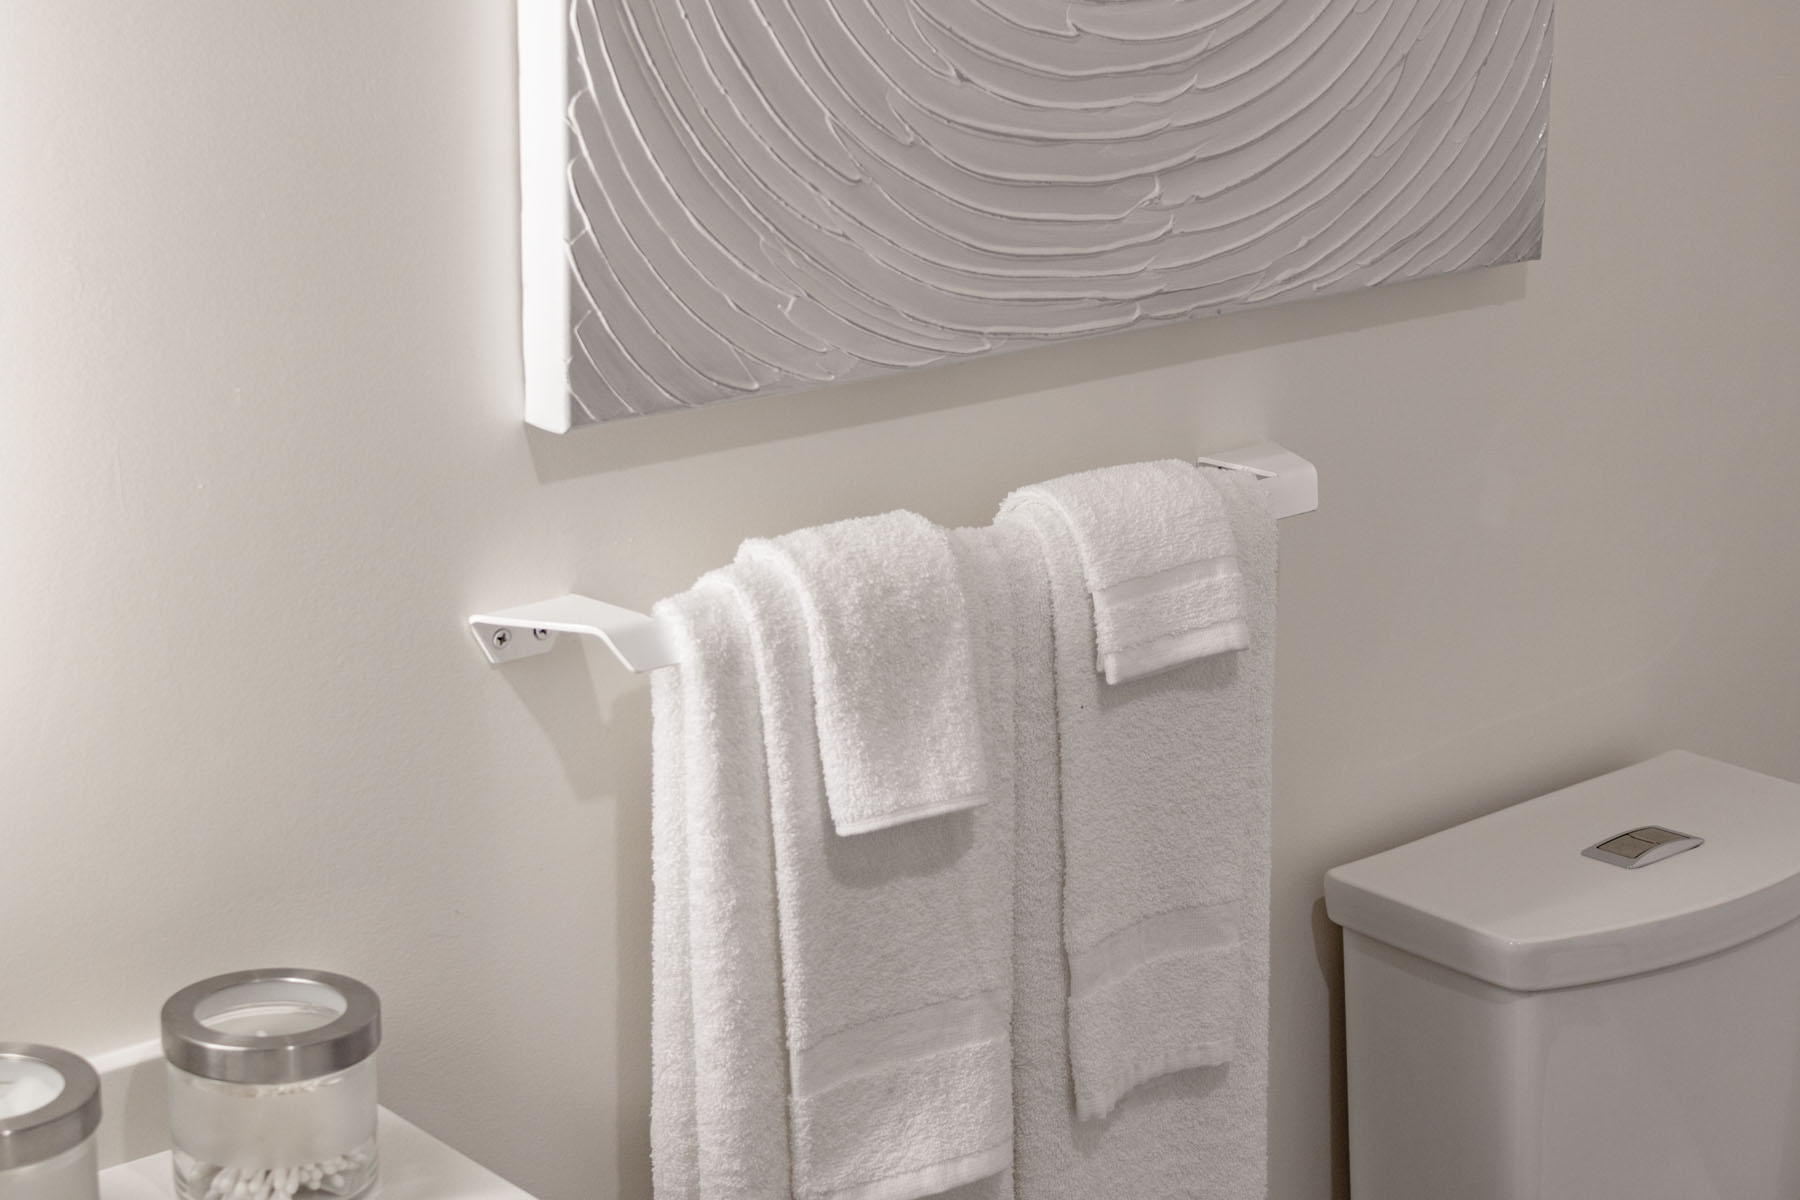 towel bar 1.jpg